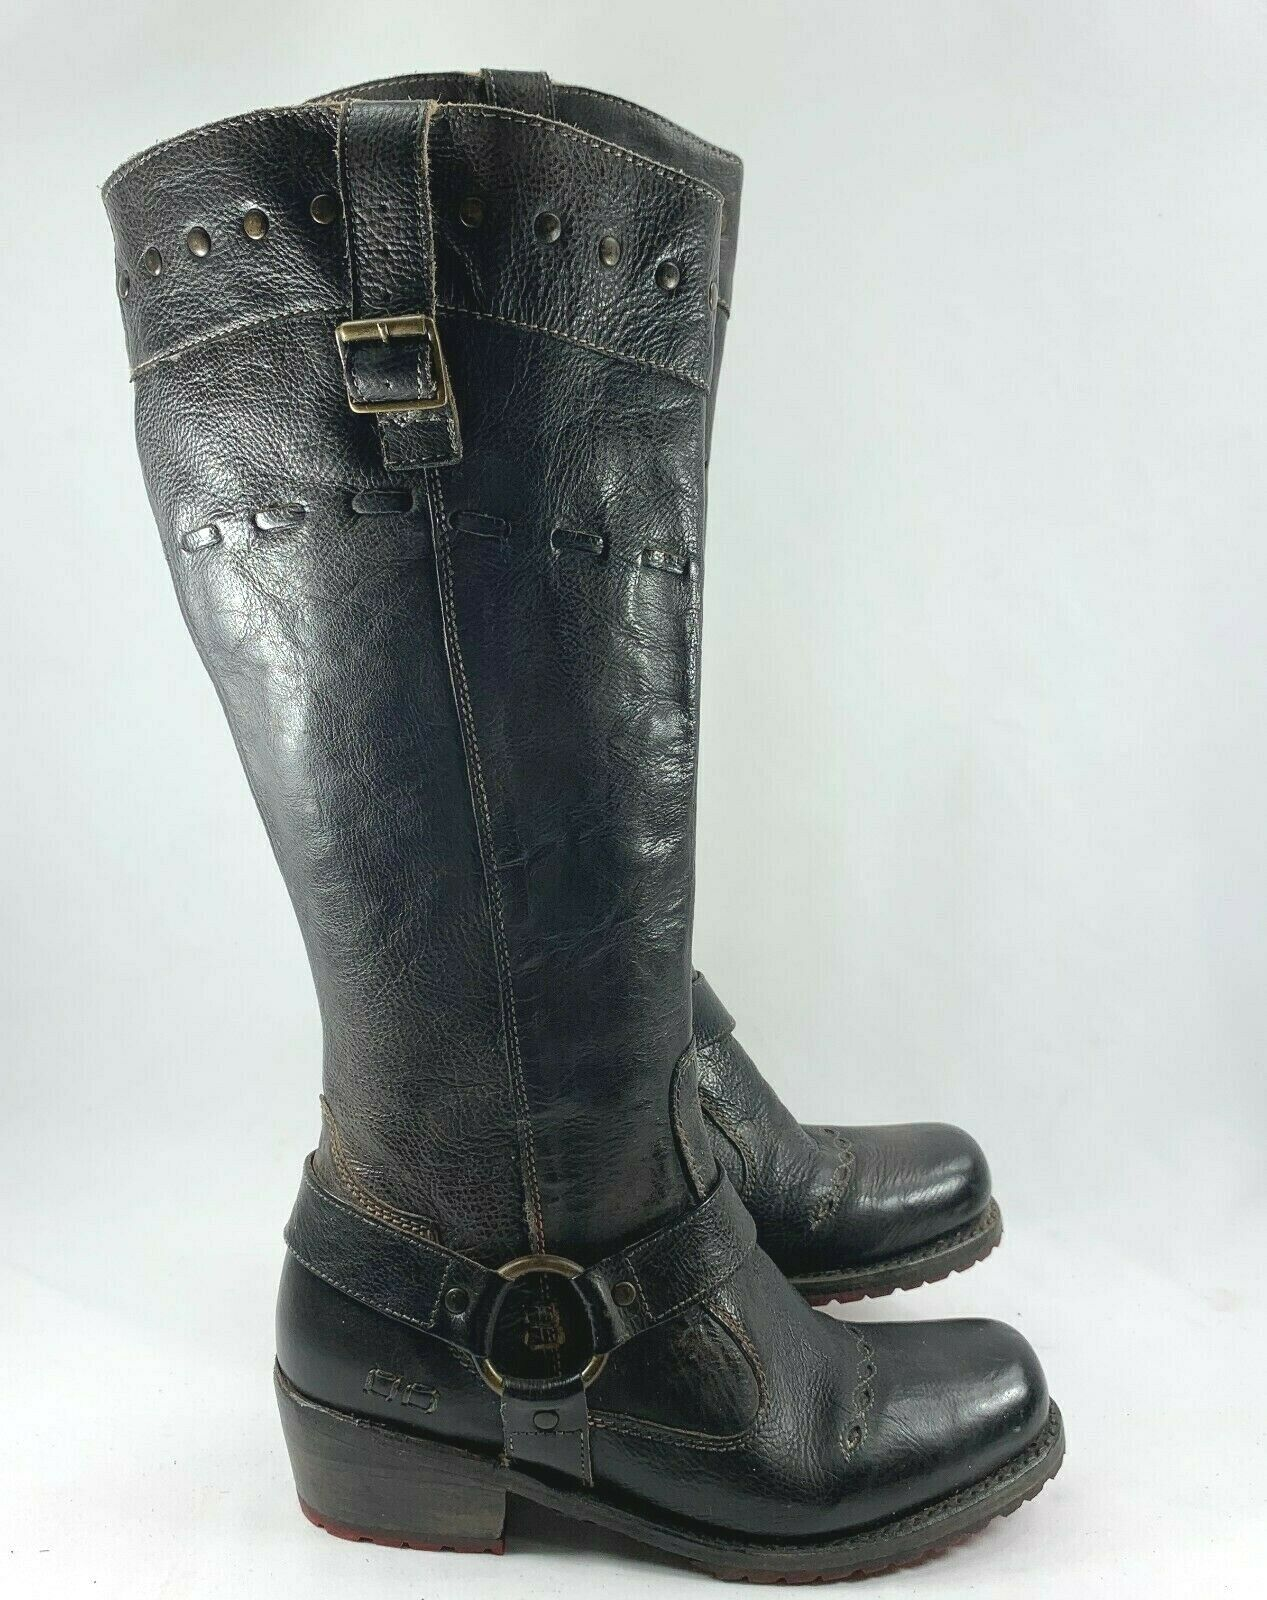 Bed Stu Women's Dualistic Tall Leather Boots Black Rustic Rust Size 7